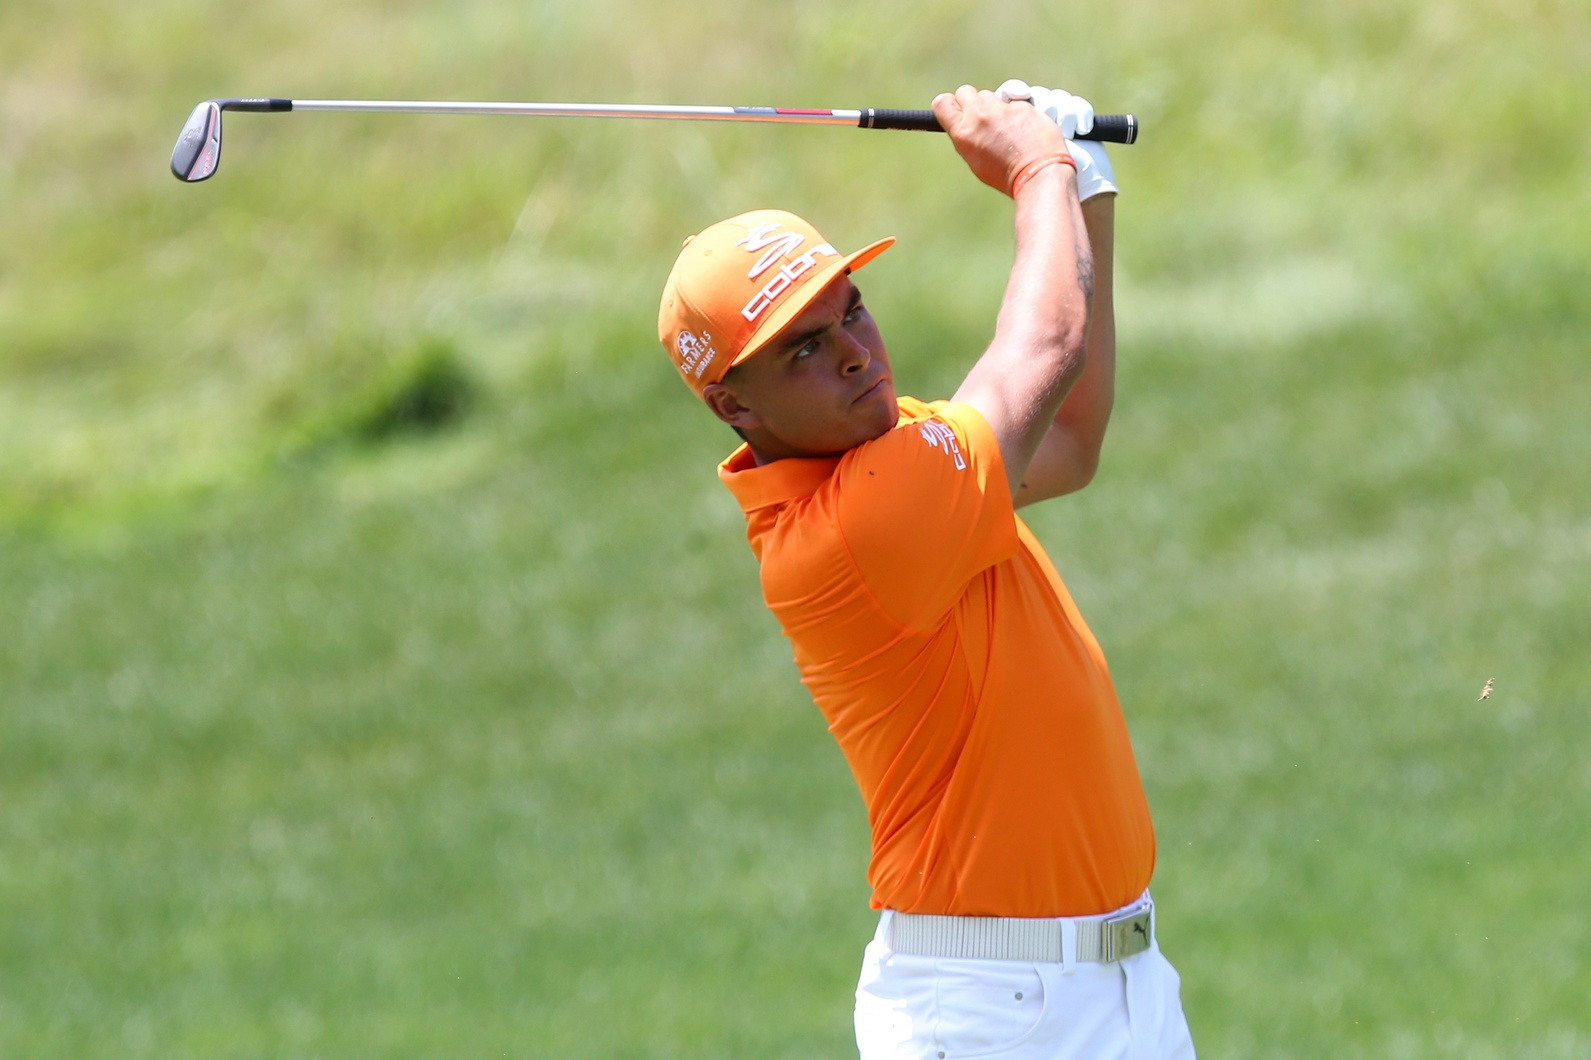 This is Rickie Fowler